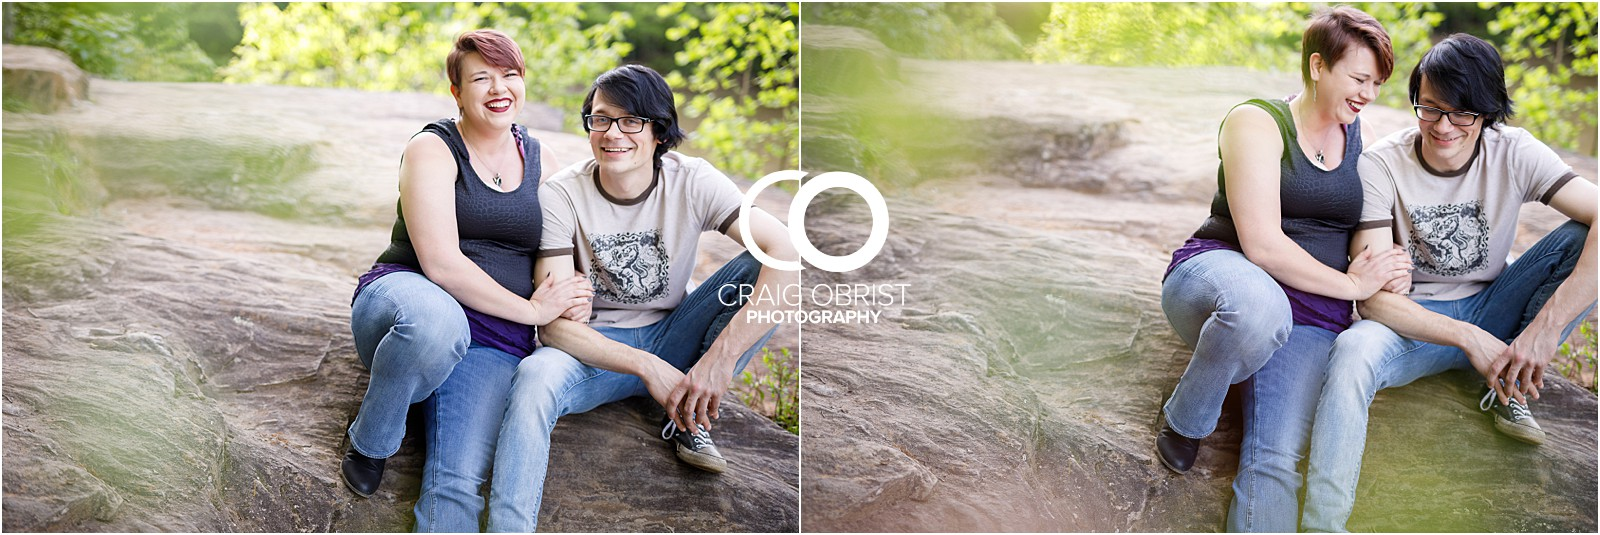 sweetwater creek park engagement portraits_0003.jpg